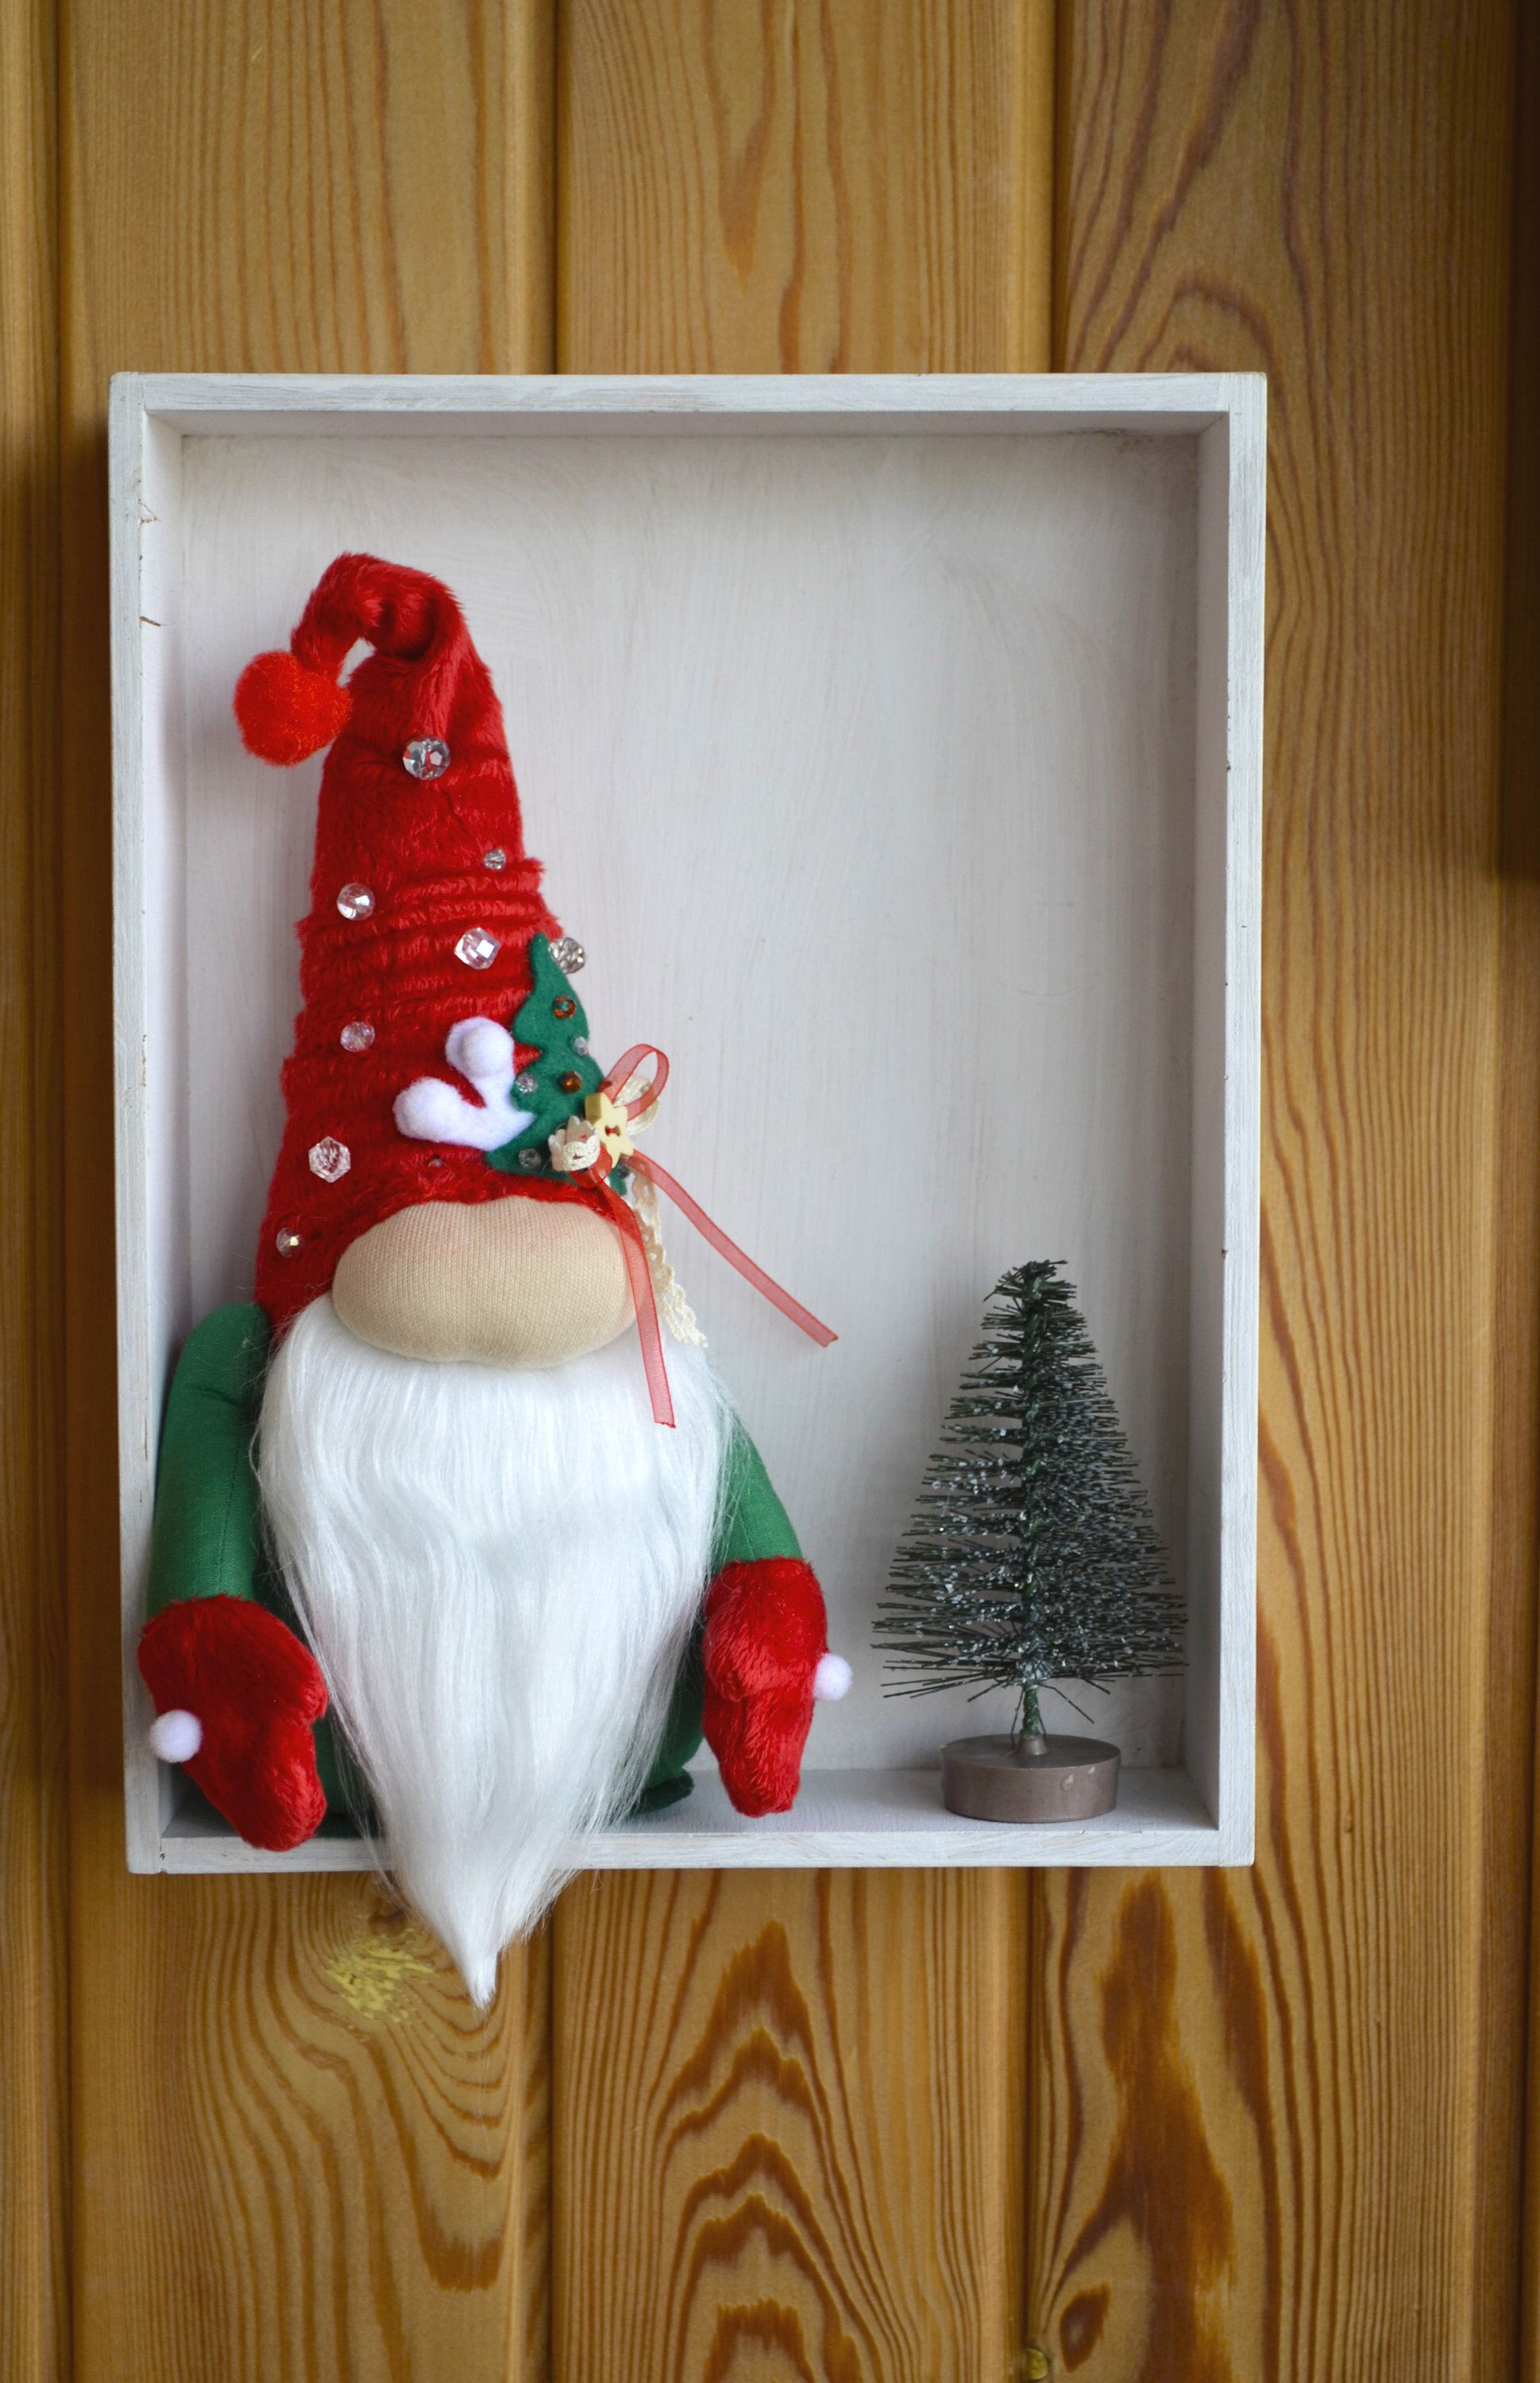 Excited To Share This Item From My Etsy Shop Christmas Gnome Christmas Gifts Scandinavian Gnome Christmas Gnome Unusual Christmas Decorations Christmas Gifts